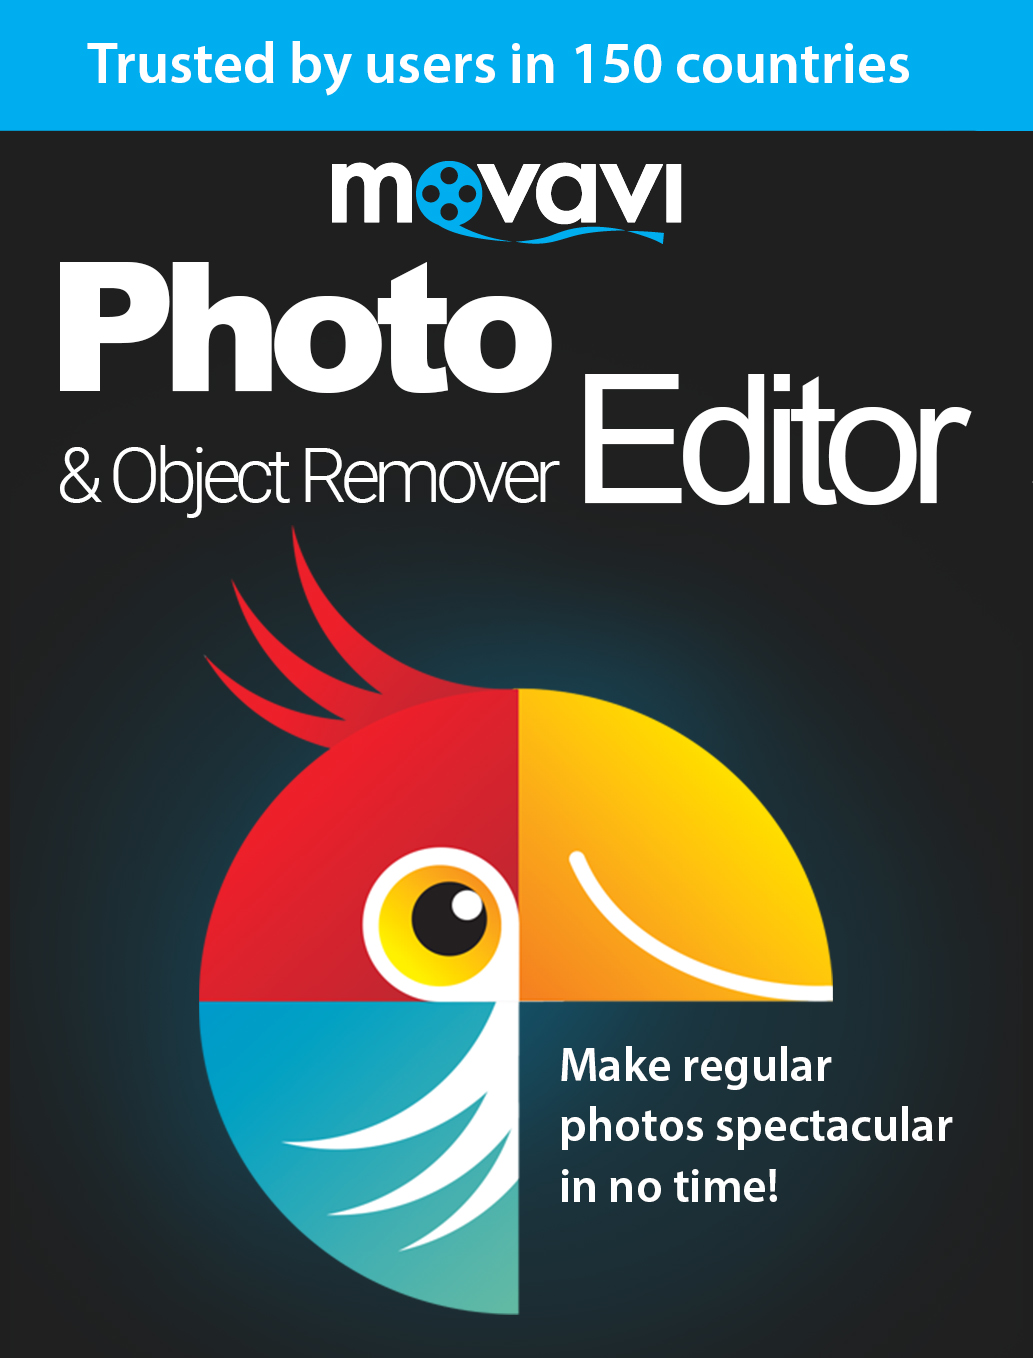 Movavi Photo Editor & Object Remover 3 Persönliche Lizenz [Download] (Pc-remover-software)